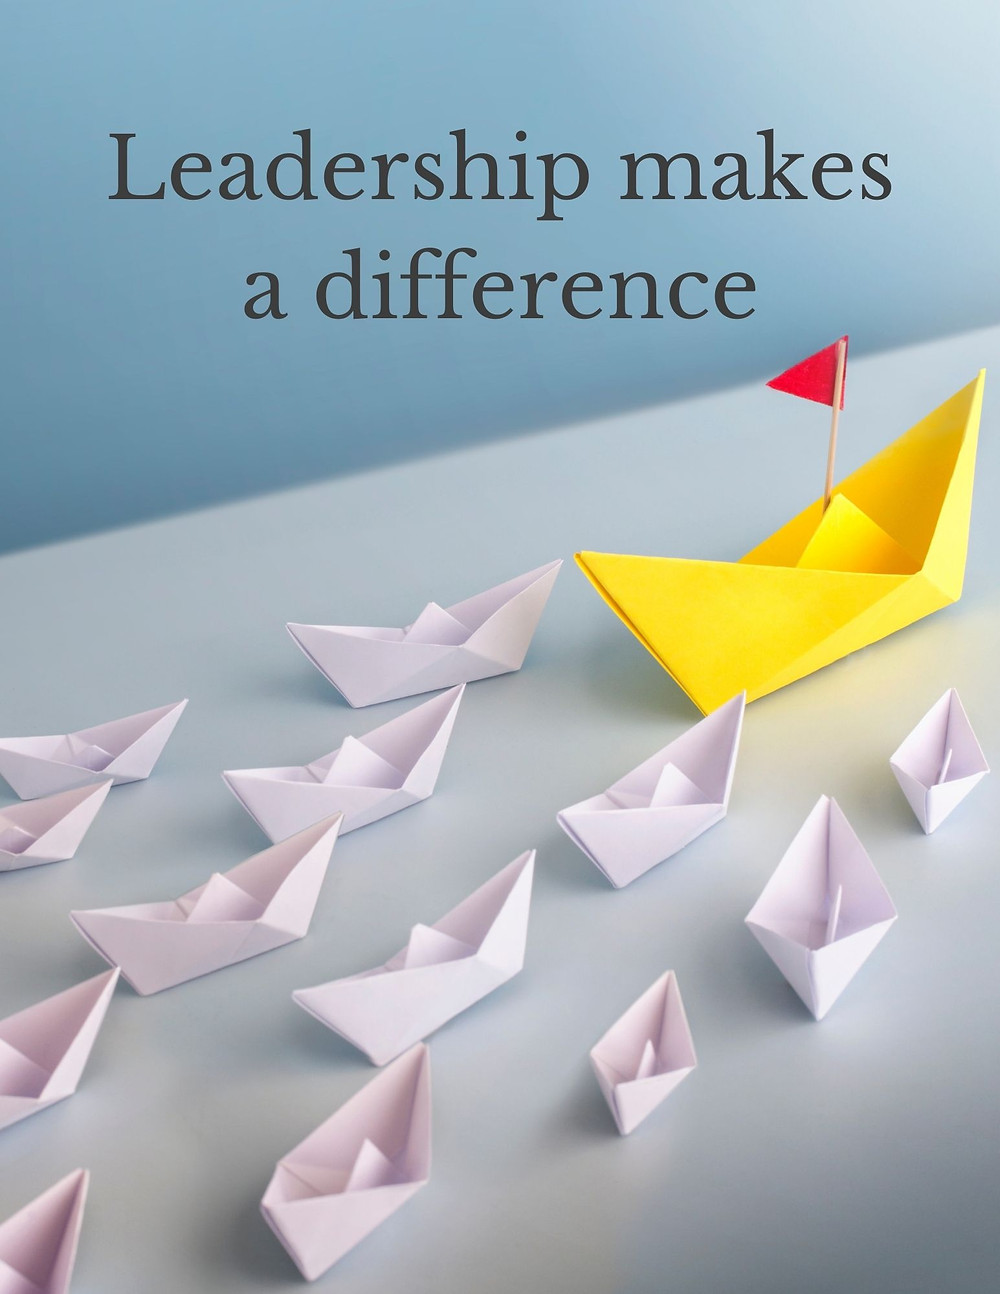 Leadership makes a difference